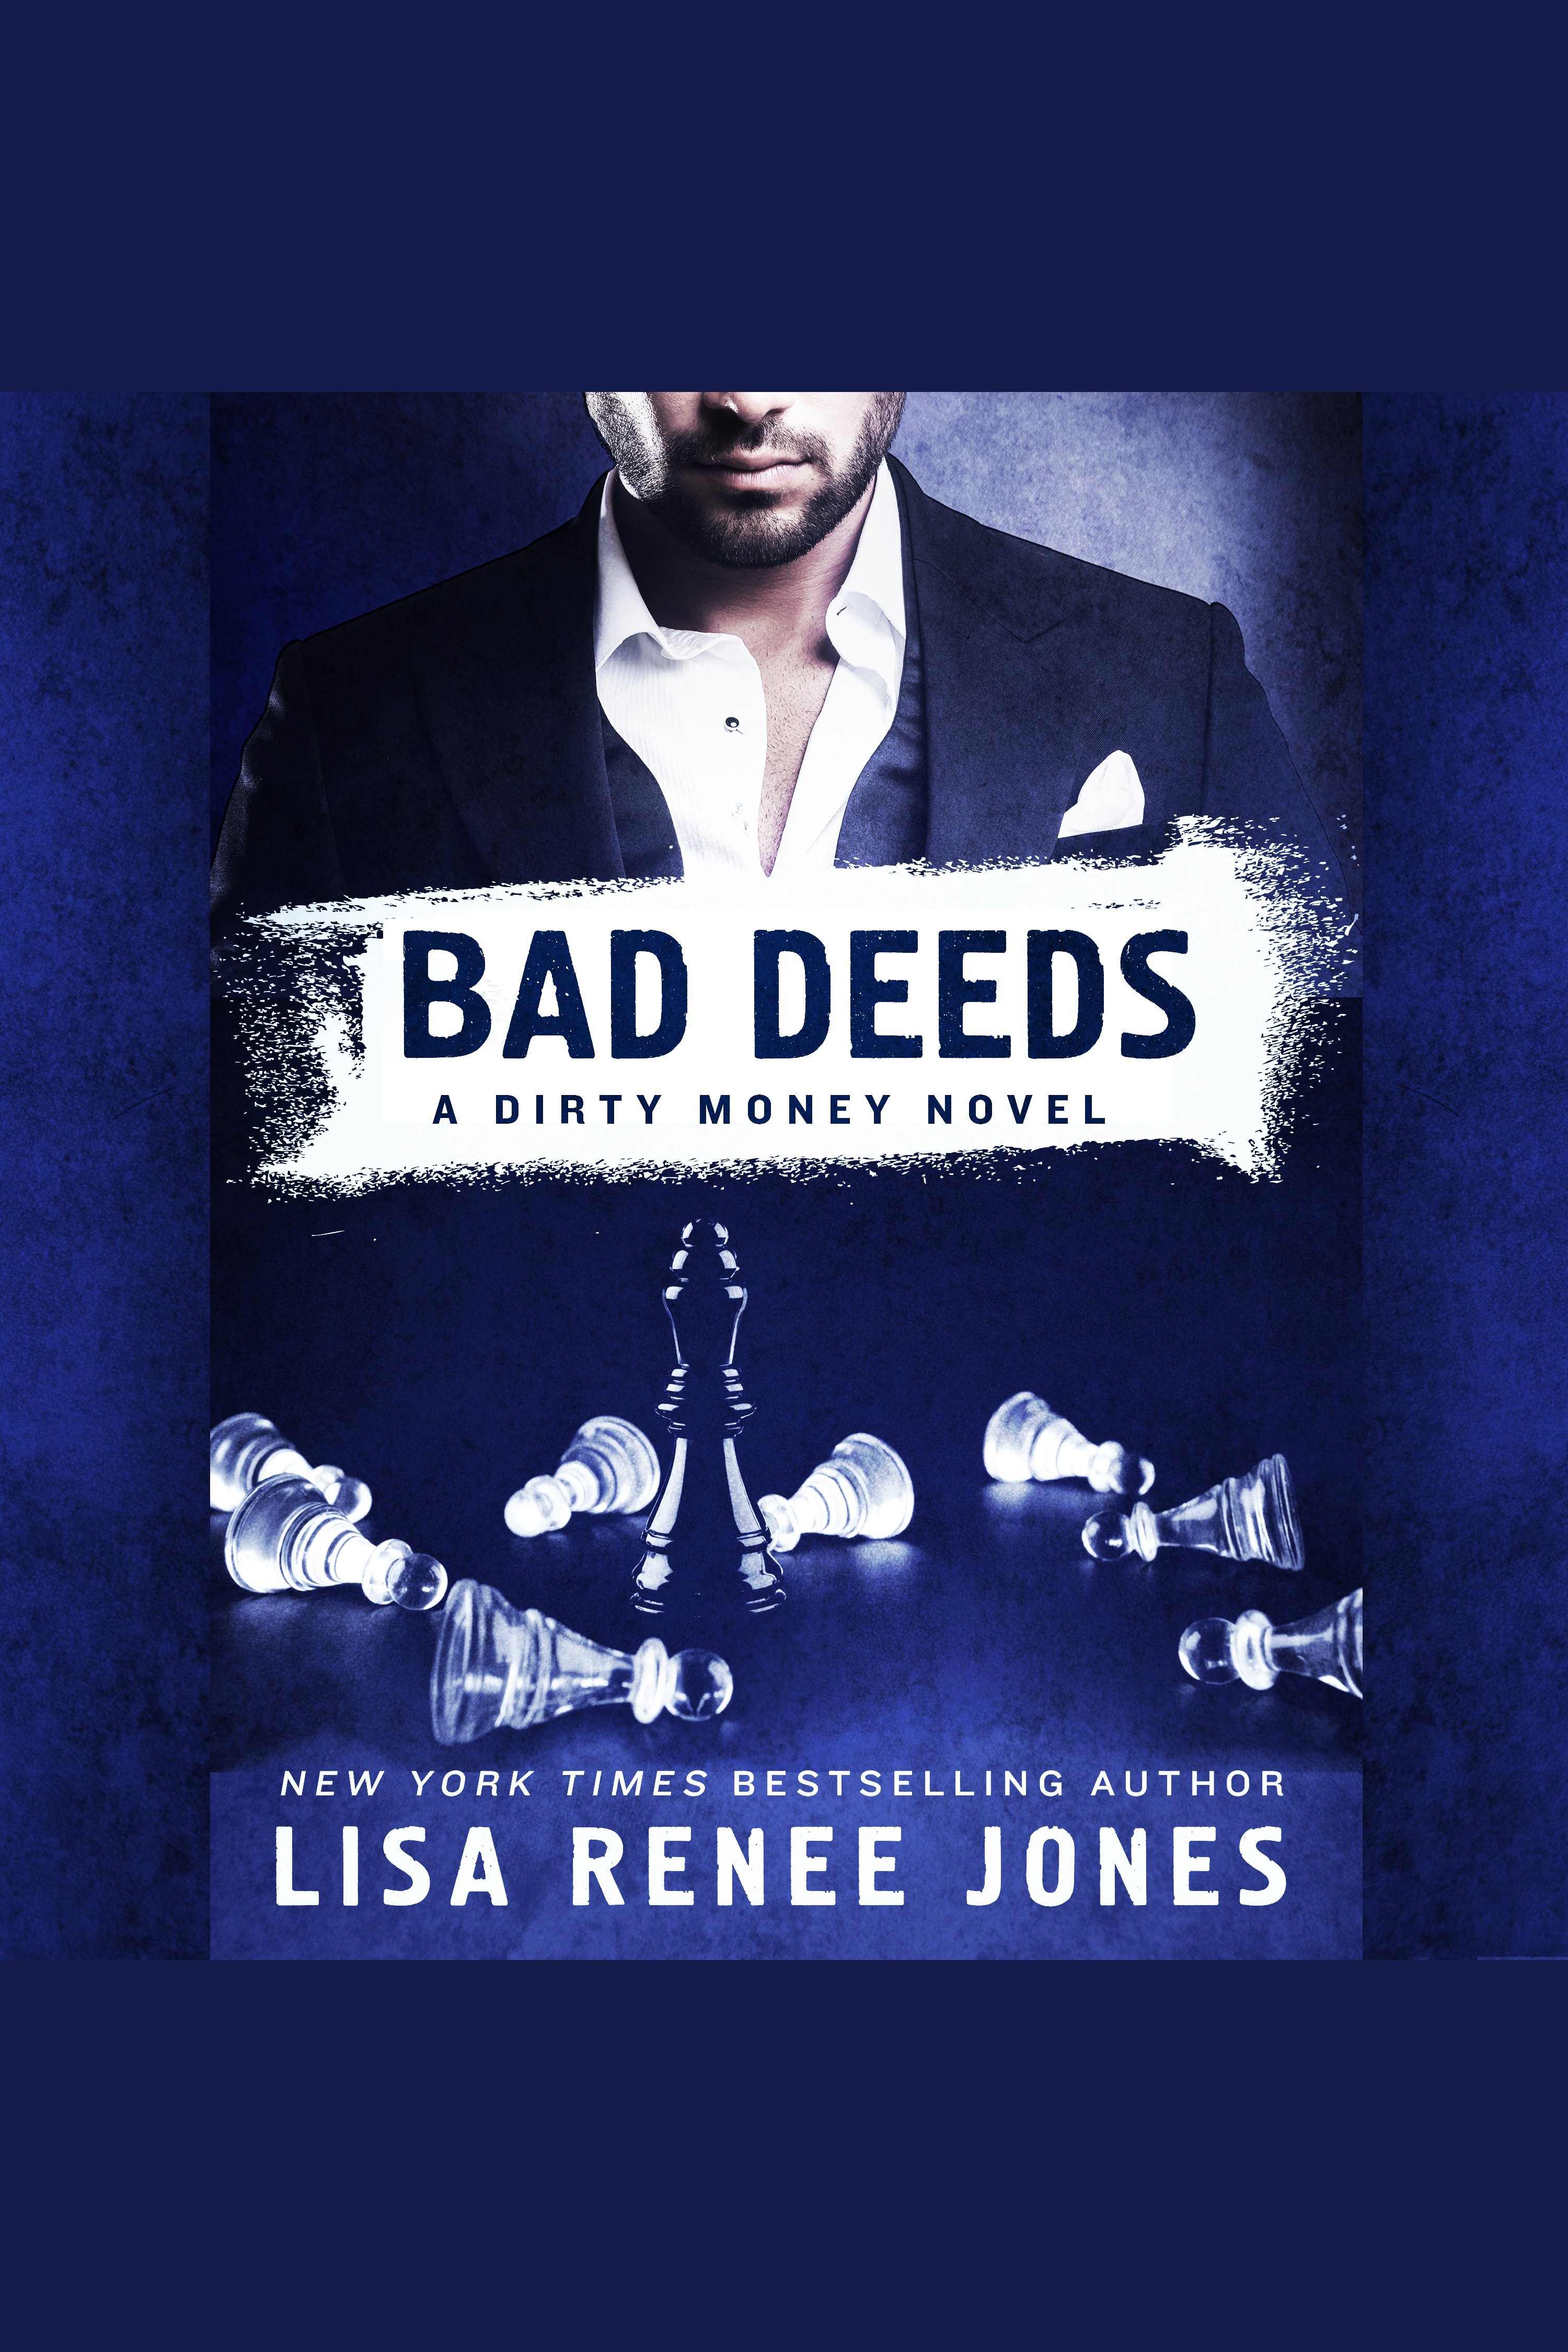 Bad Deeds A Dirty Money Novel cover image